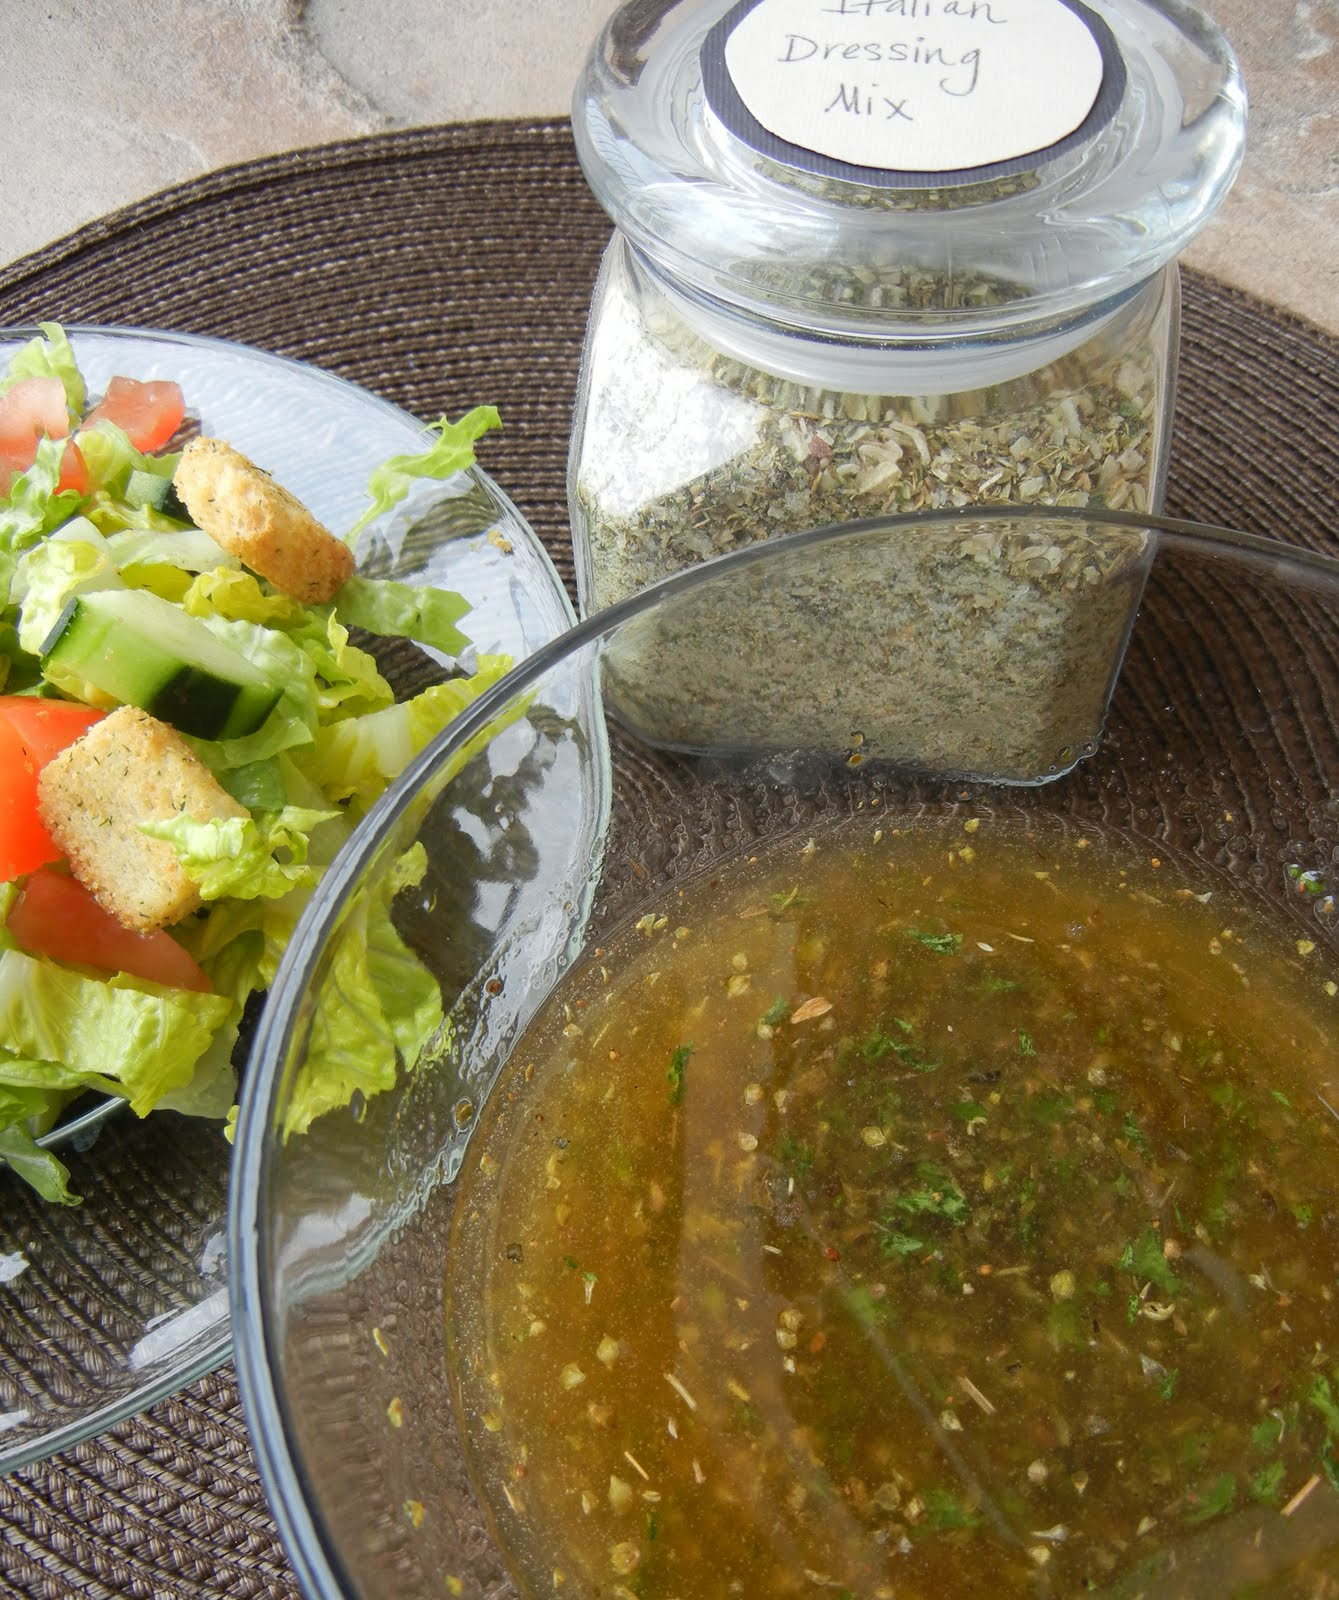 ... : Homemade Ranch Dressing Mix, Italian Seasoning Mix & Taco Seasoning